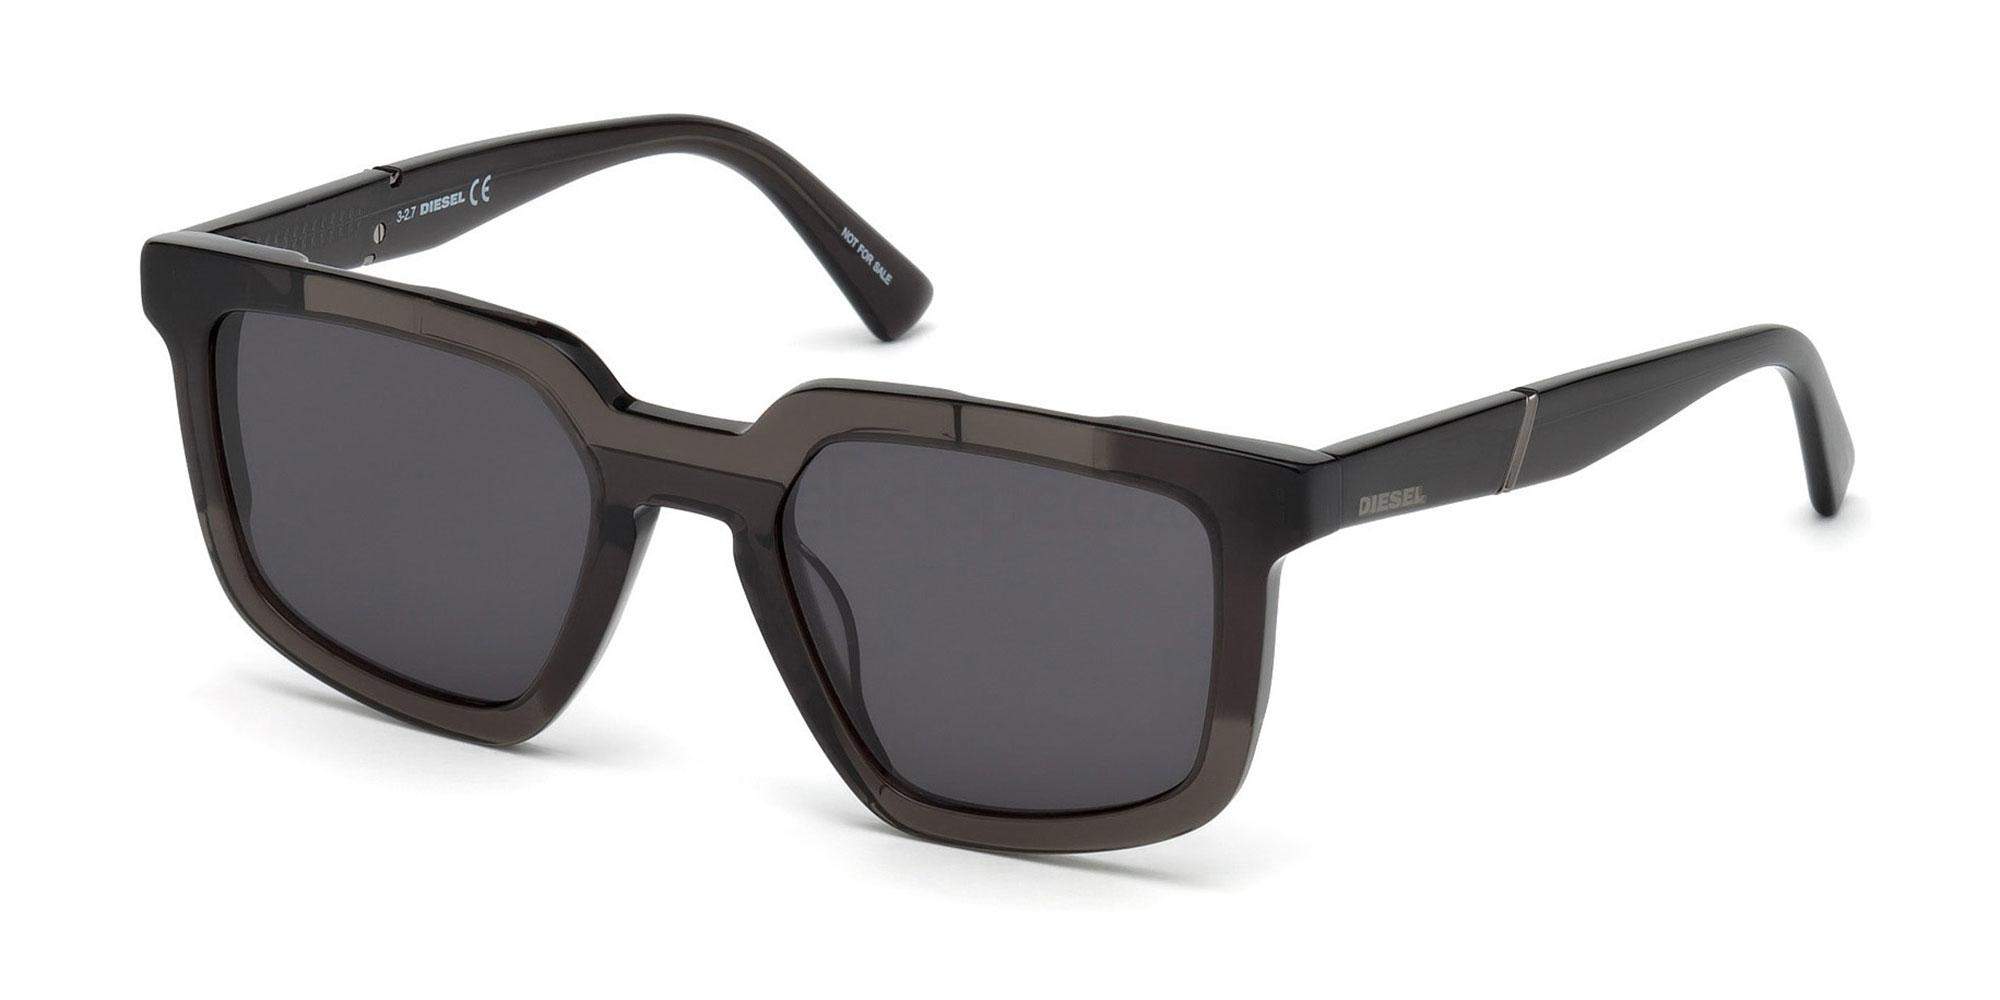 20A DL0271 Sunglasses, Diesel